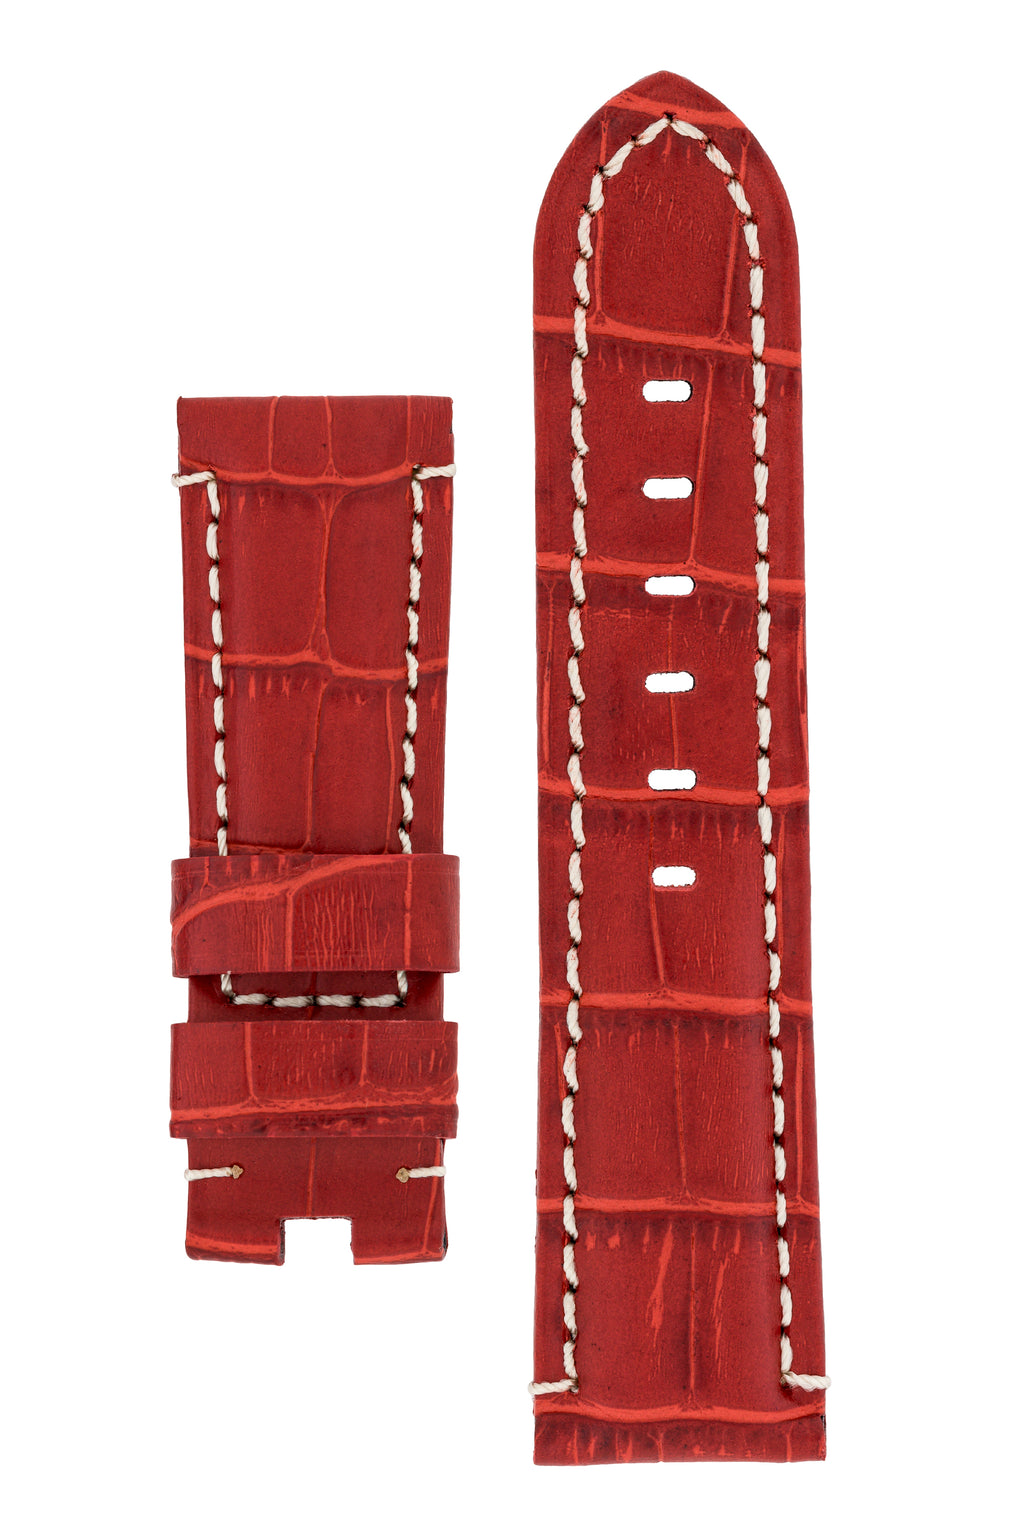 Panerai-Style Alligator-Embossed Deployment Watch Strap in RED